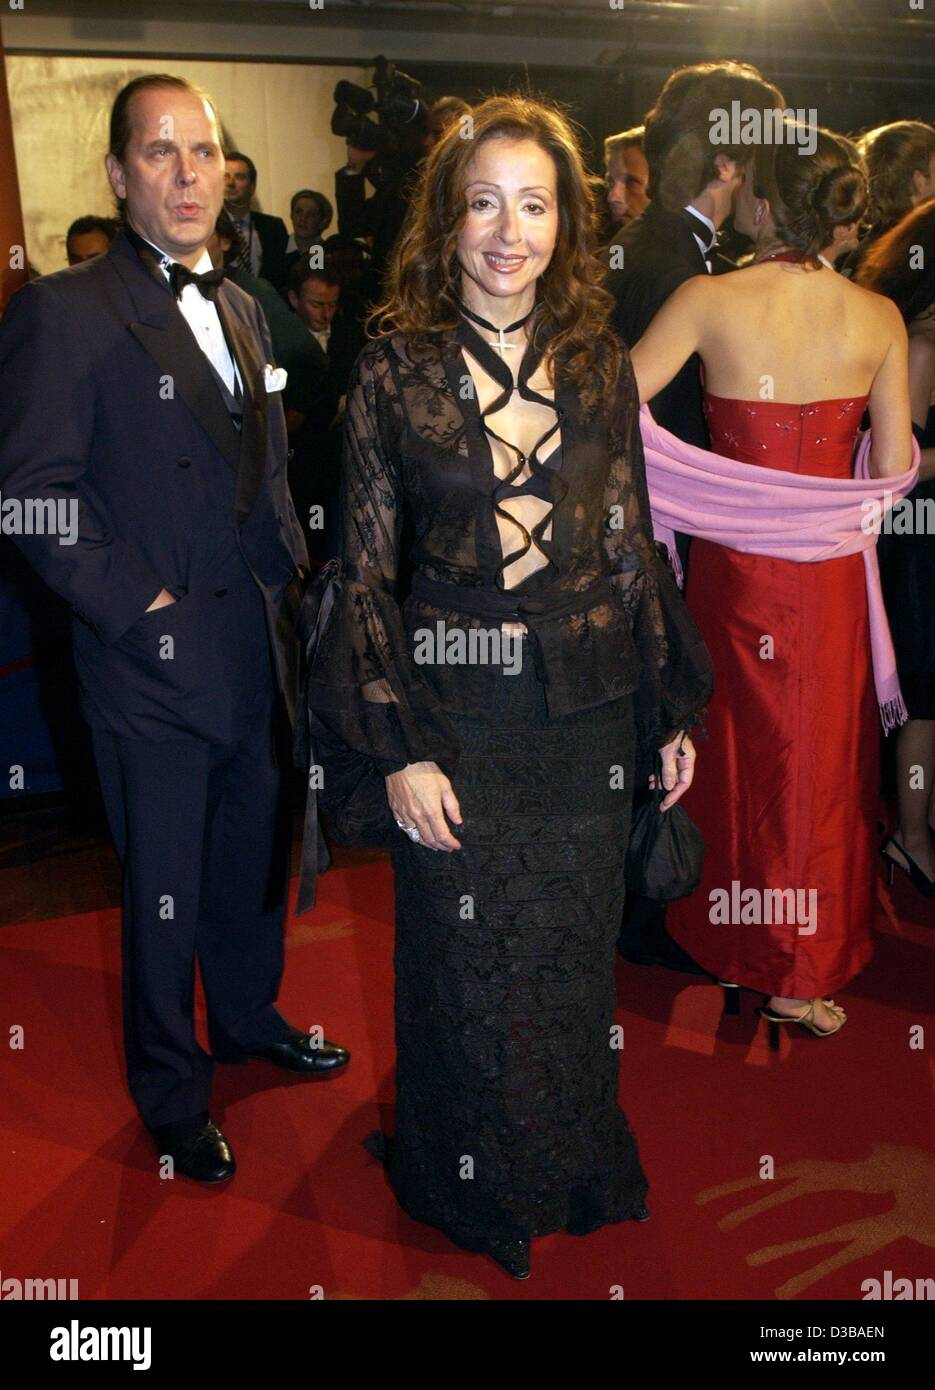 (dpa) - Greek-born Schlager singer Vicky Leandros and her husband Enno Baron von Ruffin arrive at the Bambi award - Stock Image